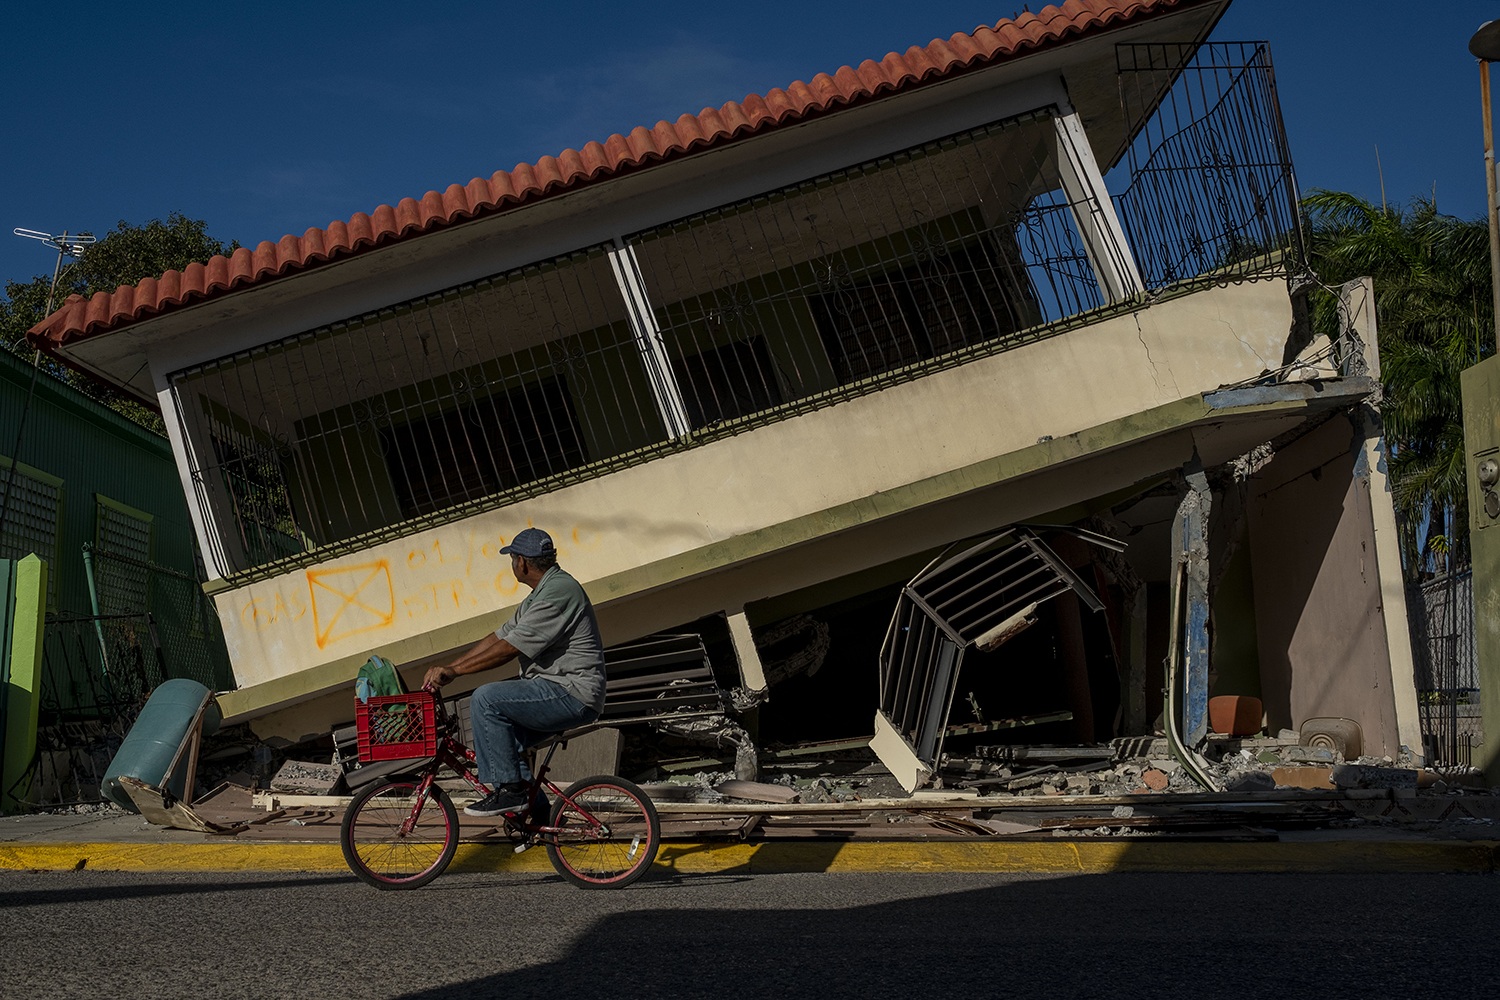 A man rides his bicycle pass past a collapsed house in Guanica, Puerto Rico, on Jan. 15 after a powerful earthquake hit the island. RICARDO ARDUENGO/AFP via Getty Images